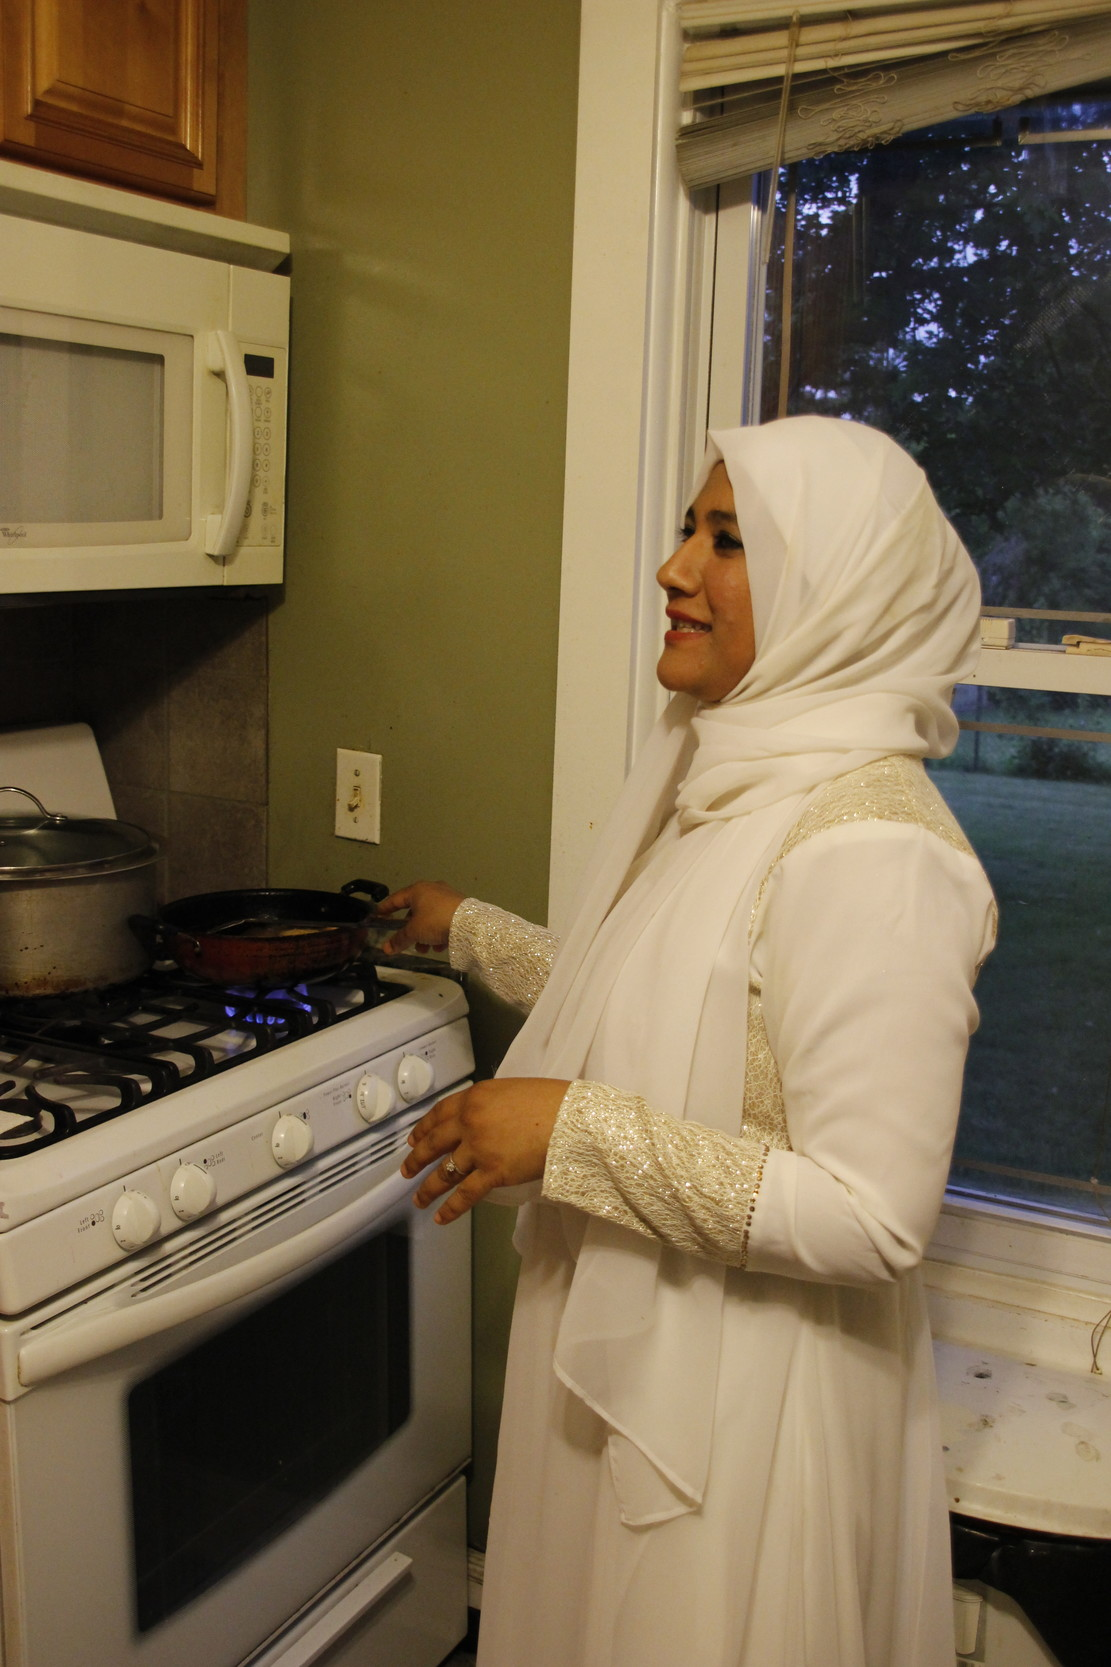 Ruhee Kapadia, 36, fried samosas in her kitchen in preparation for one of Ramadan's final meals.